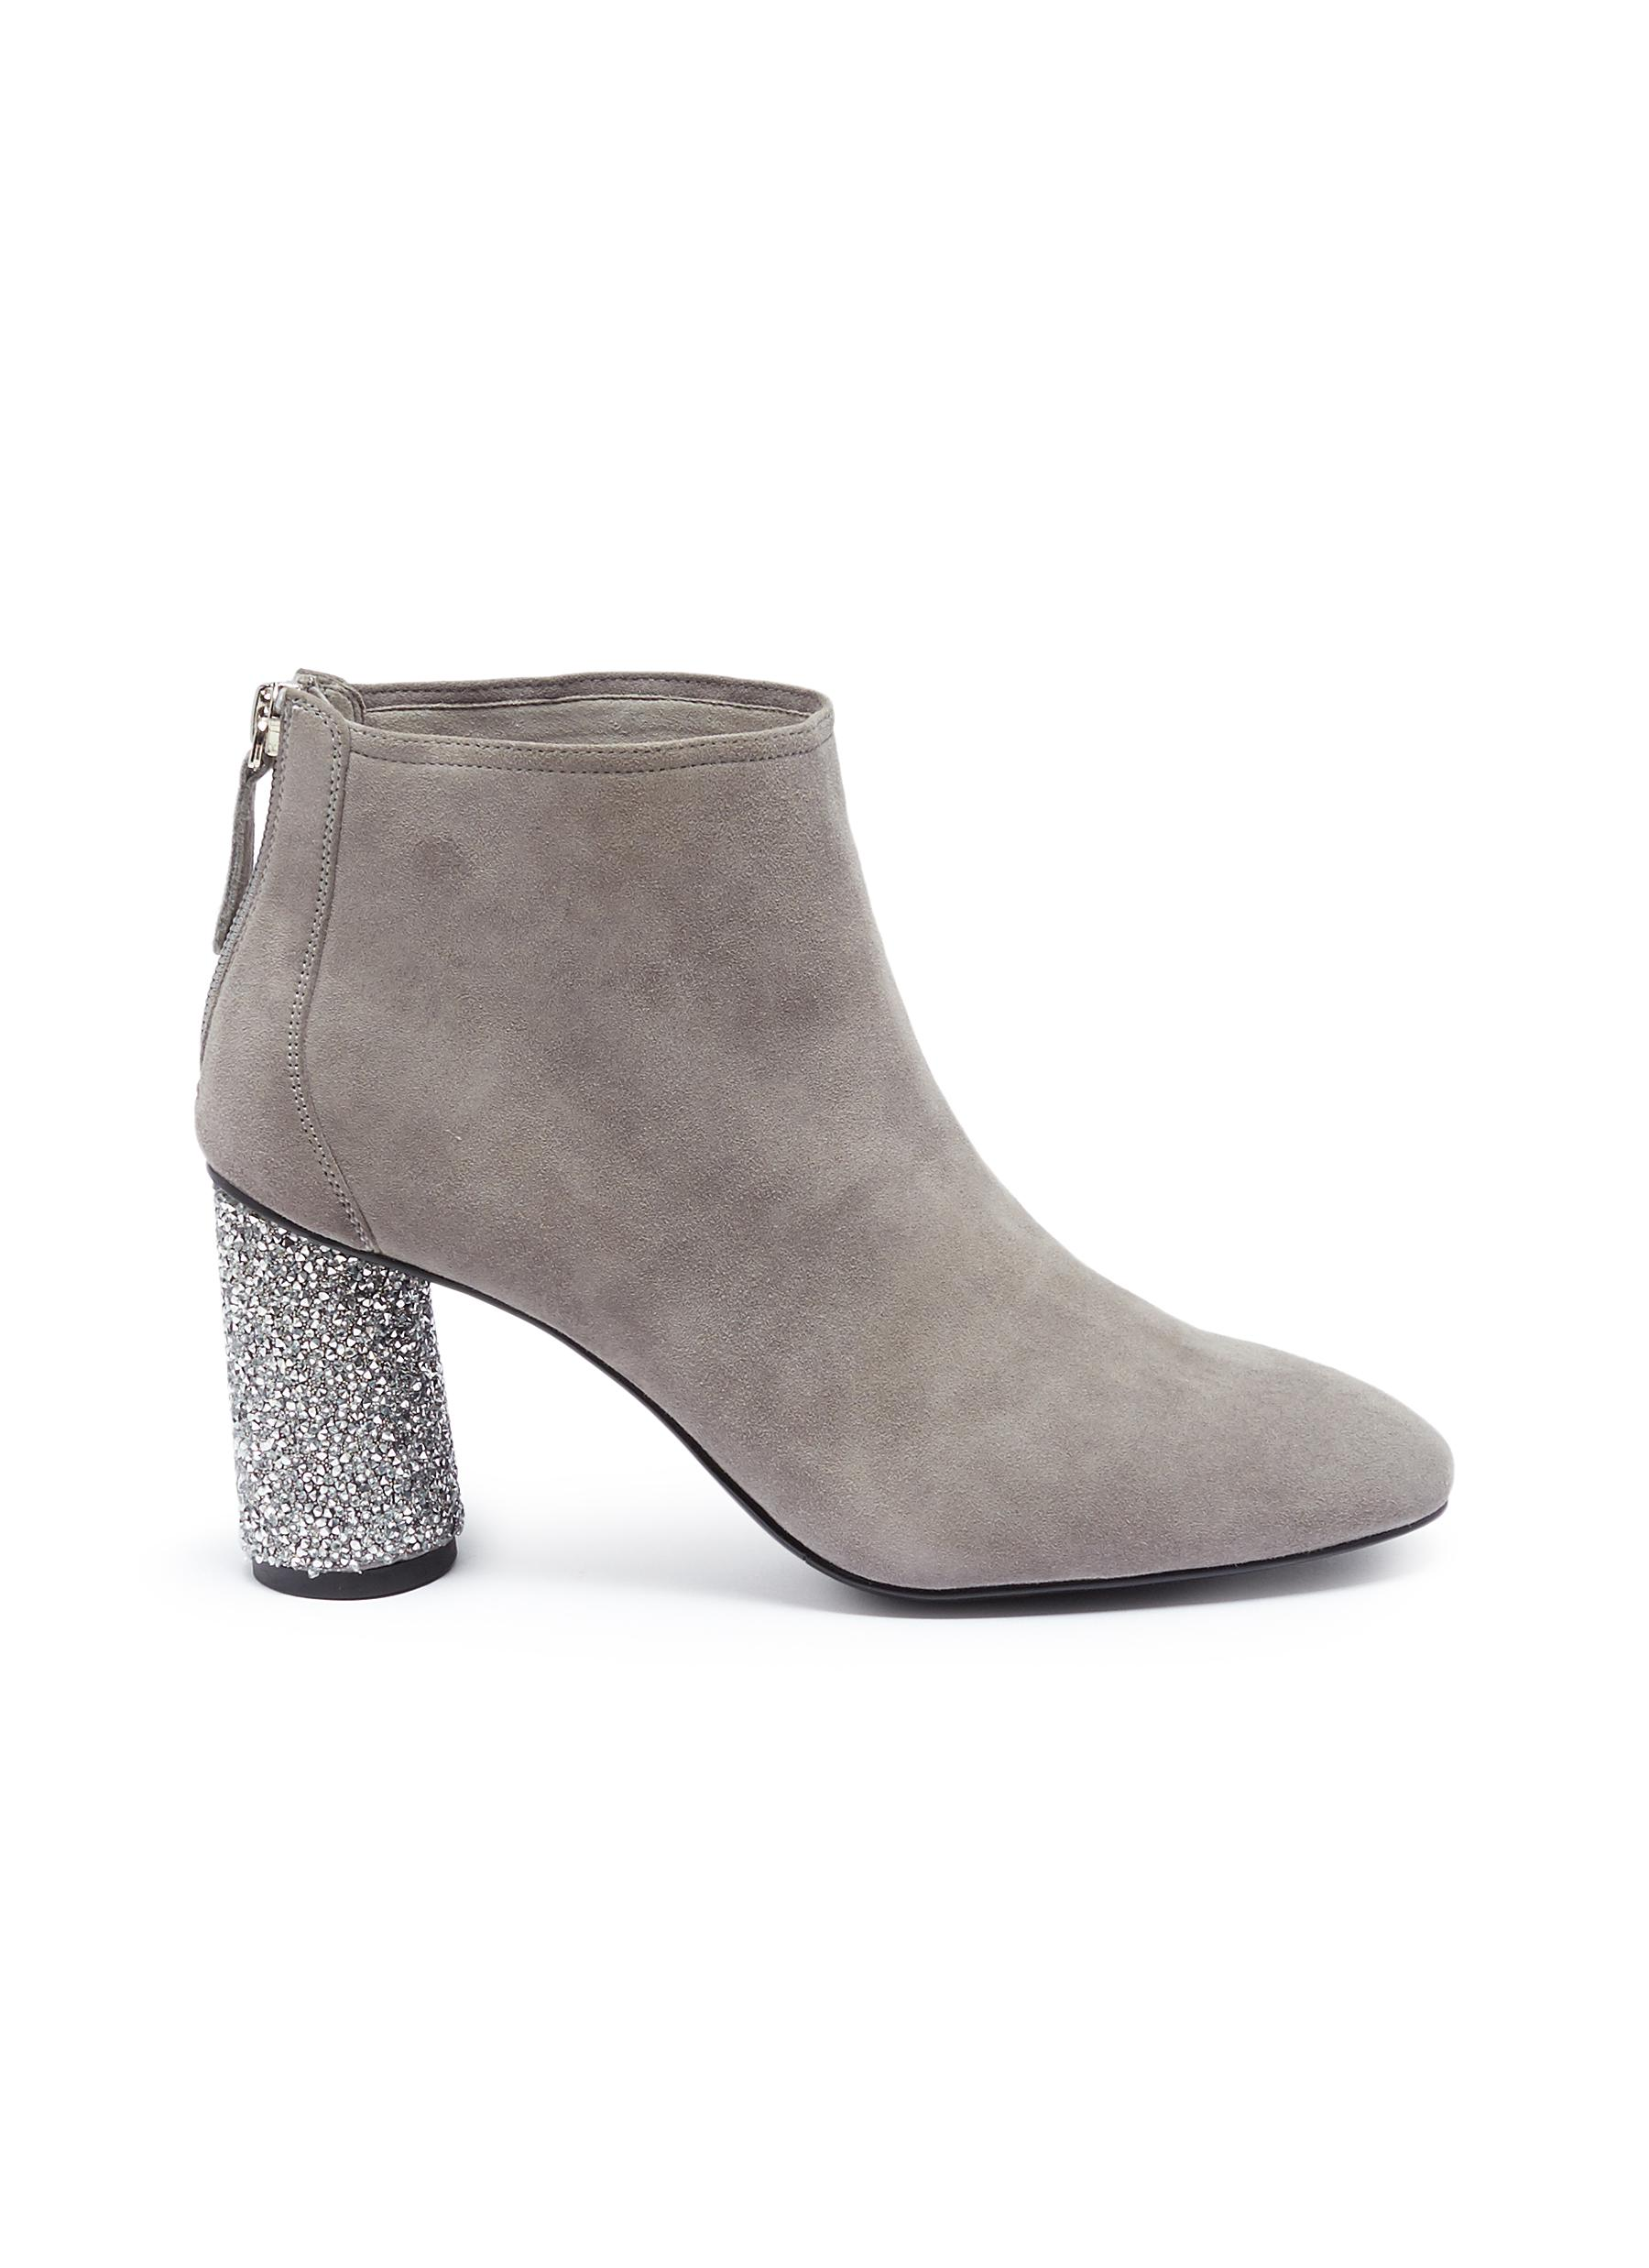 Gino strass heel suede ankle boots by Pedder Red